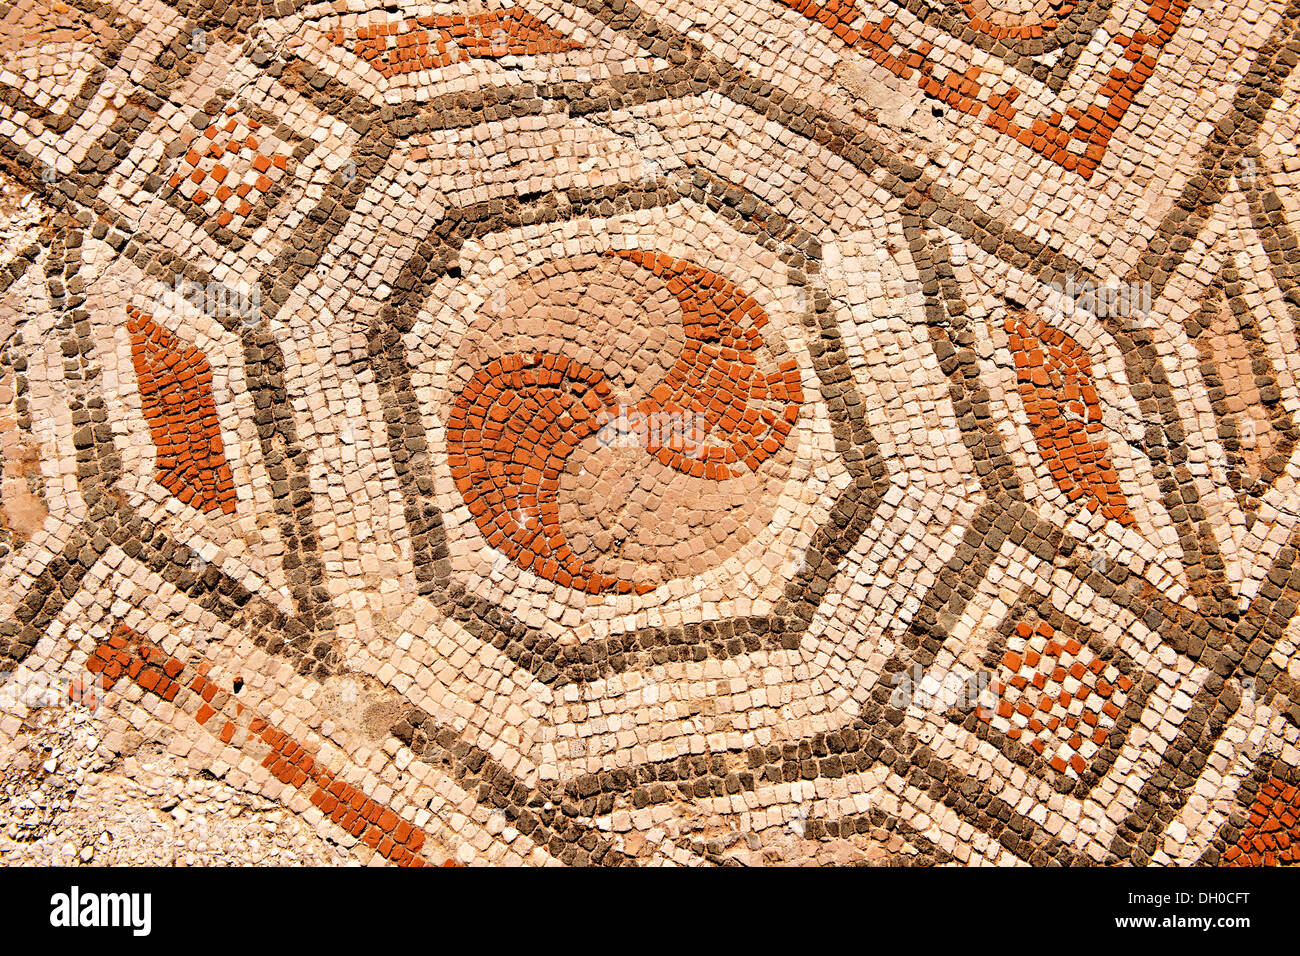 4th cent. AD geometric floor mosaics of the late Roman period Jewish synagogue of Sardis archaeological site, Turkey - Stock Image